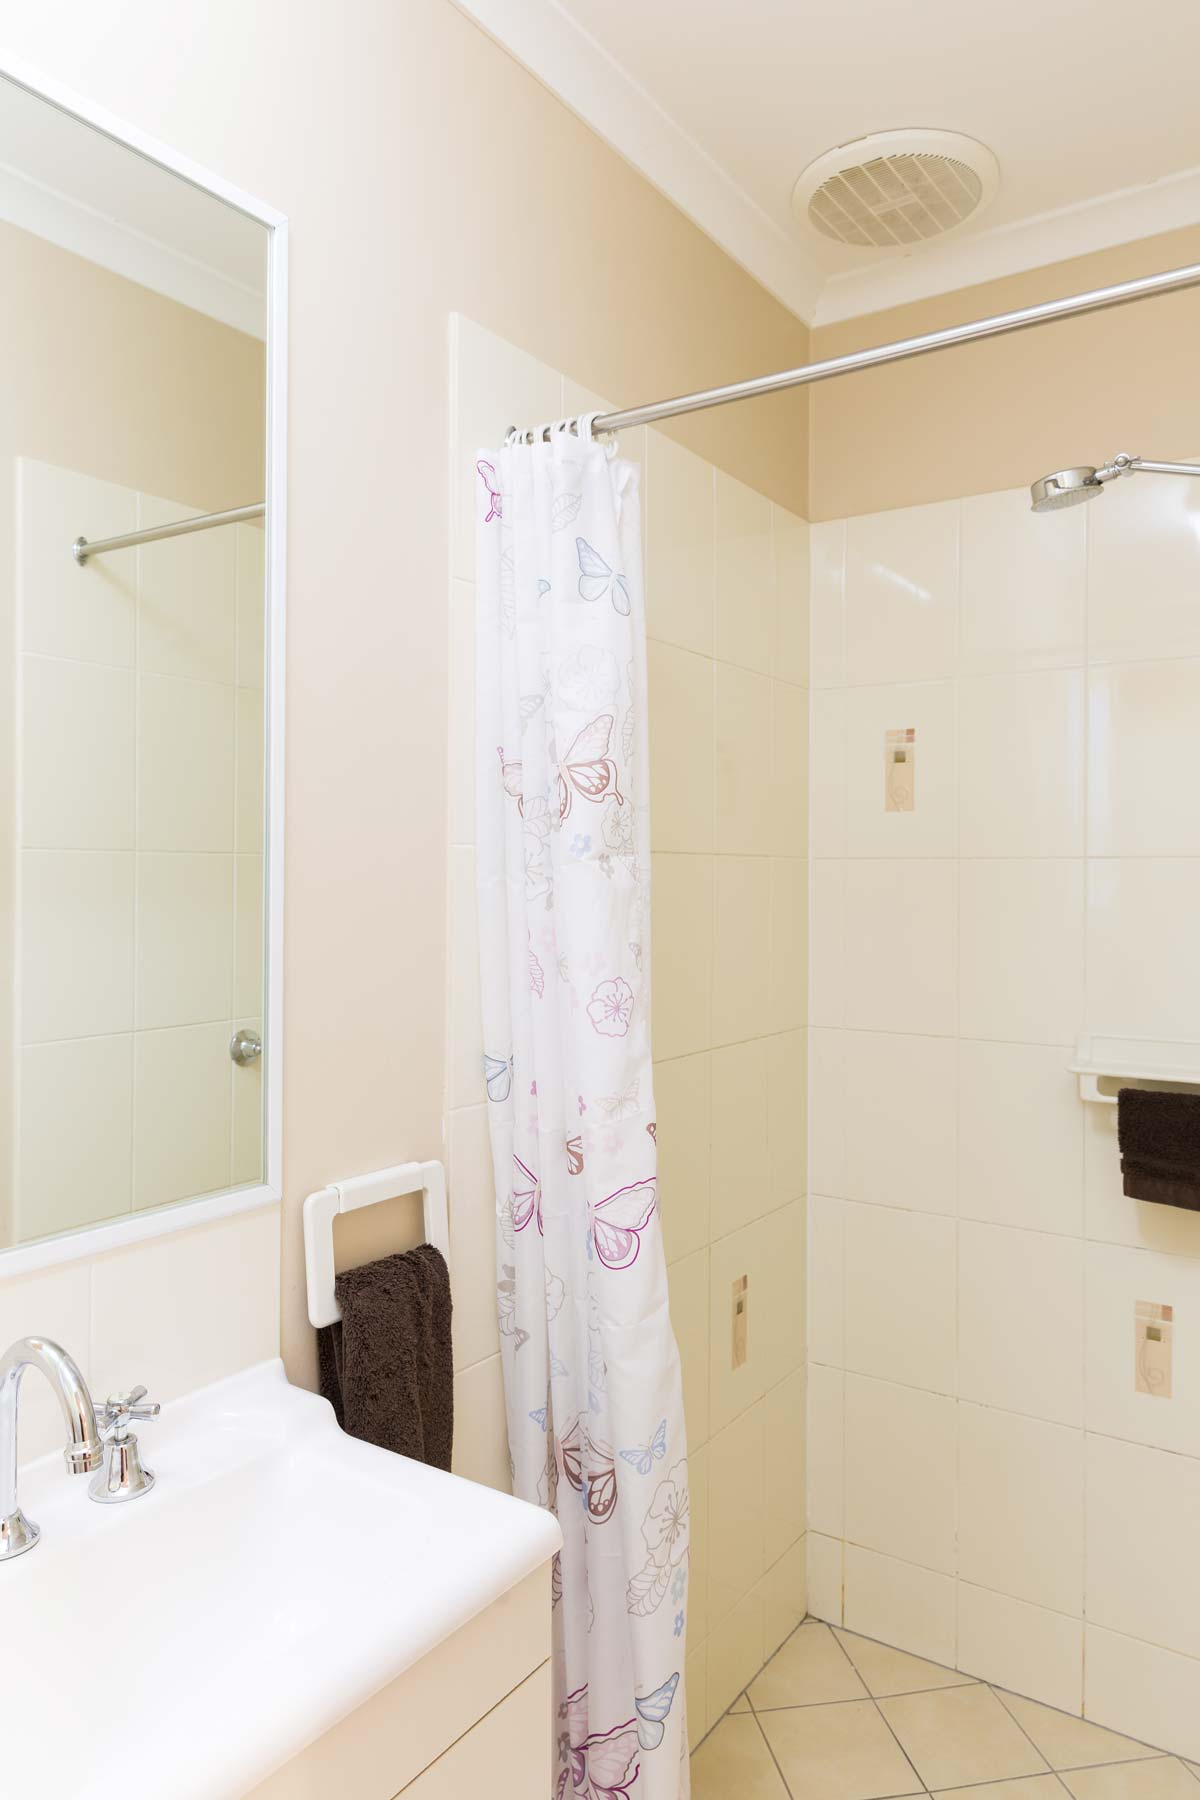 greenacres capalaba caravan park villa bathroom shower